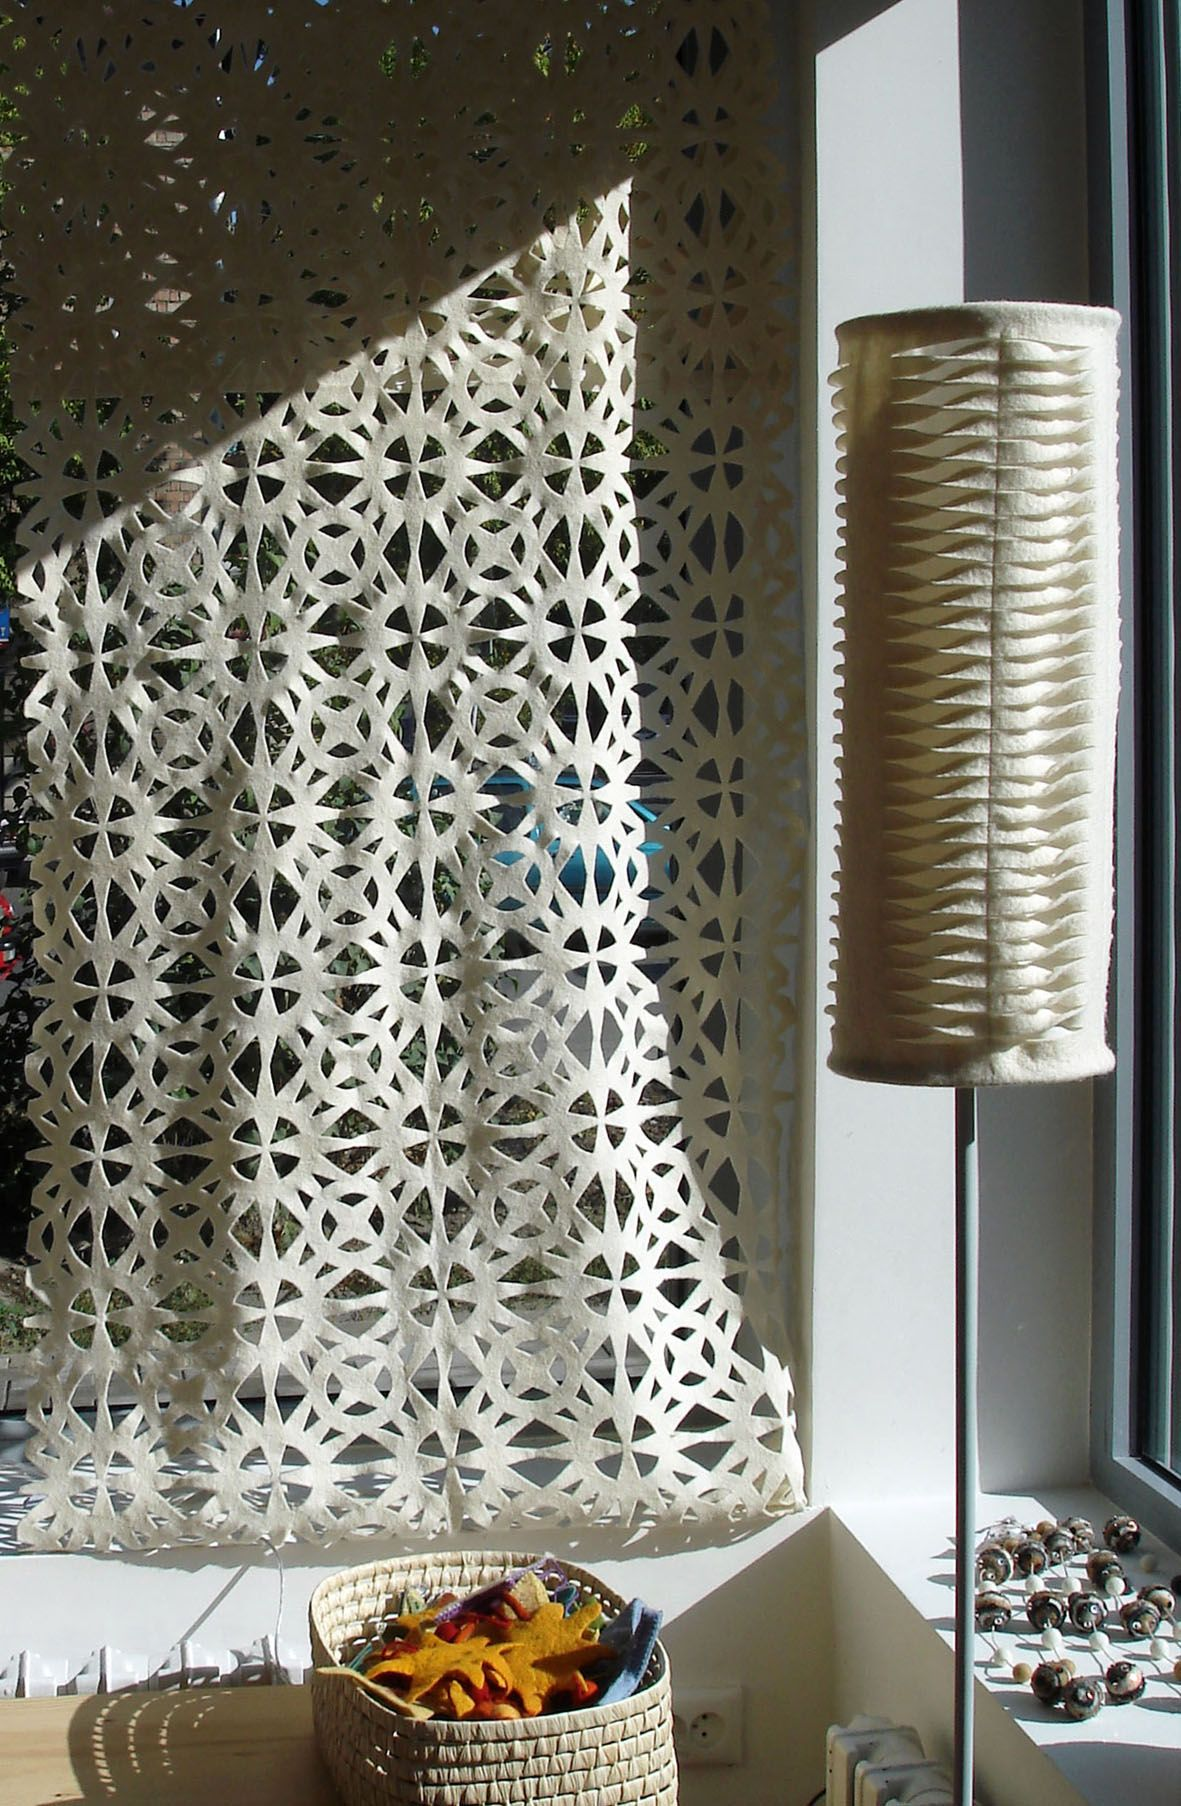 Perforated Felt Lampshades and Curtains designed and handmade by Tumar Art Group.